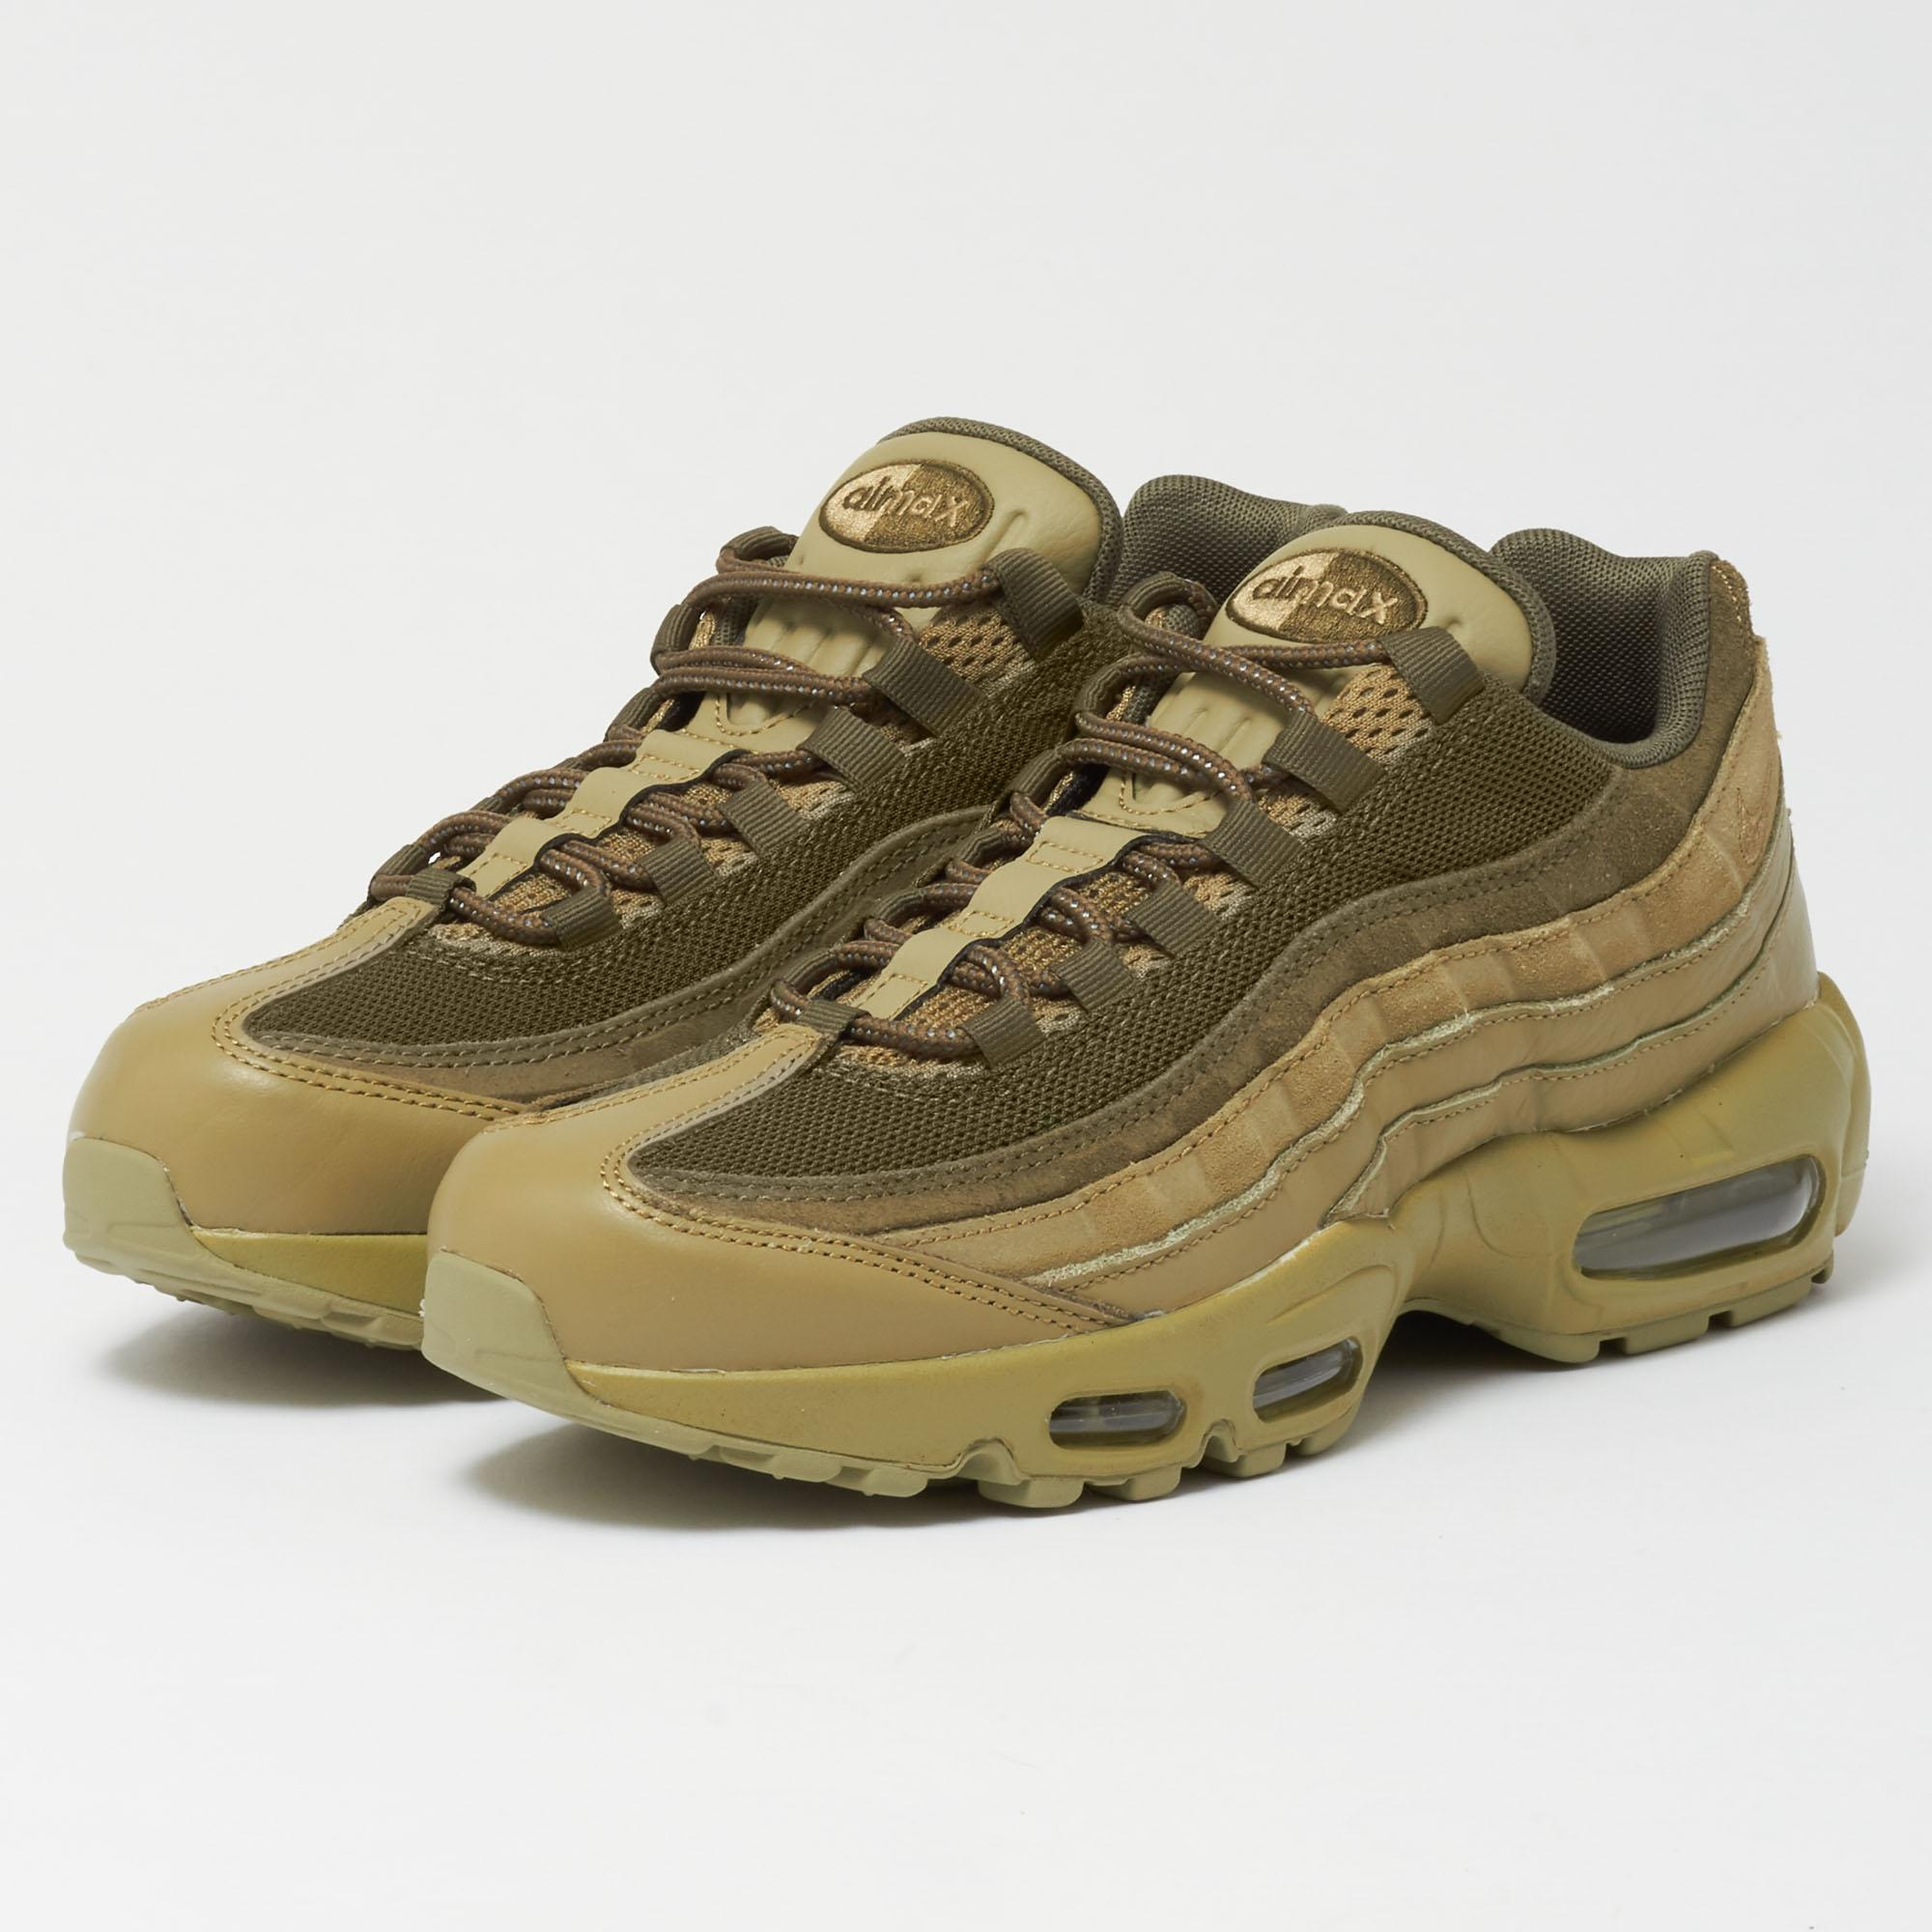 buy online 8dbd5 15387 Nike Leather Air Max 95 Prm - Neutral Olive in Green for Men ...